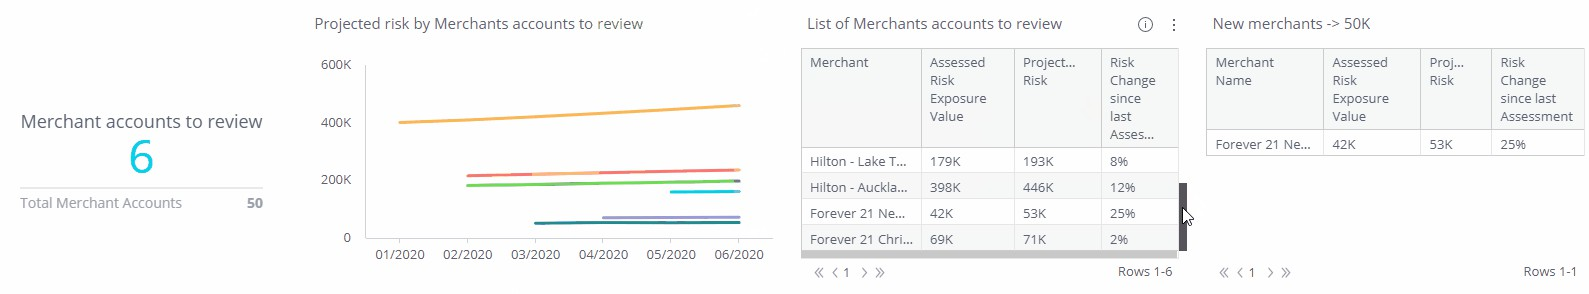 Risk Analysis of Merchant with Calculated Risk Over 50k